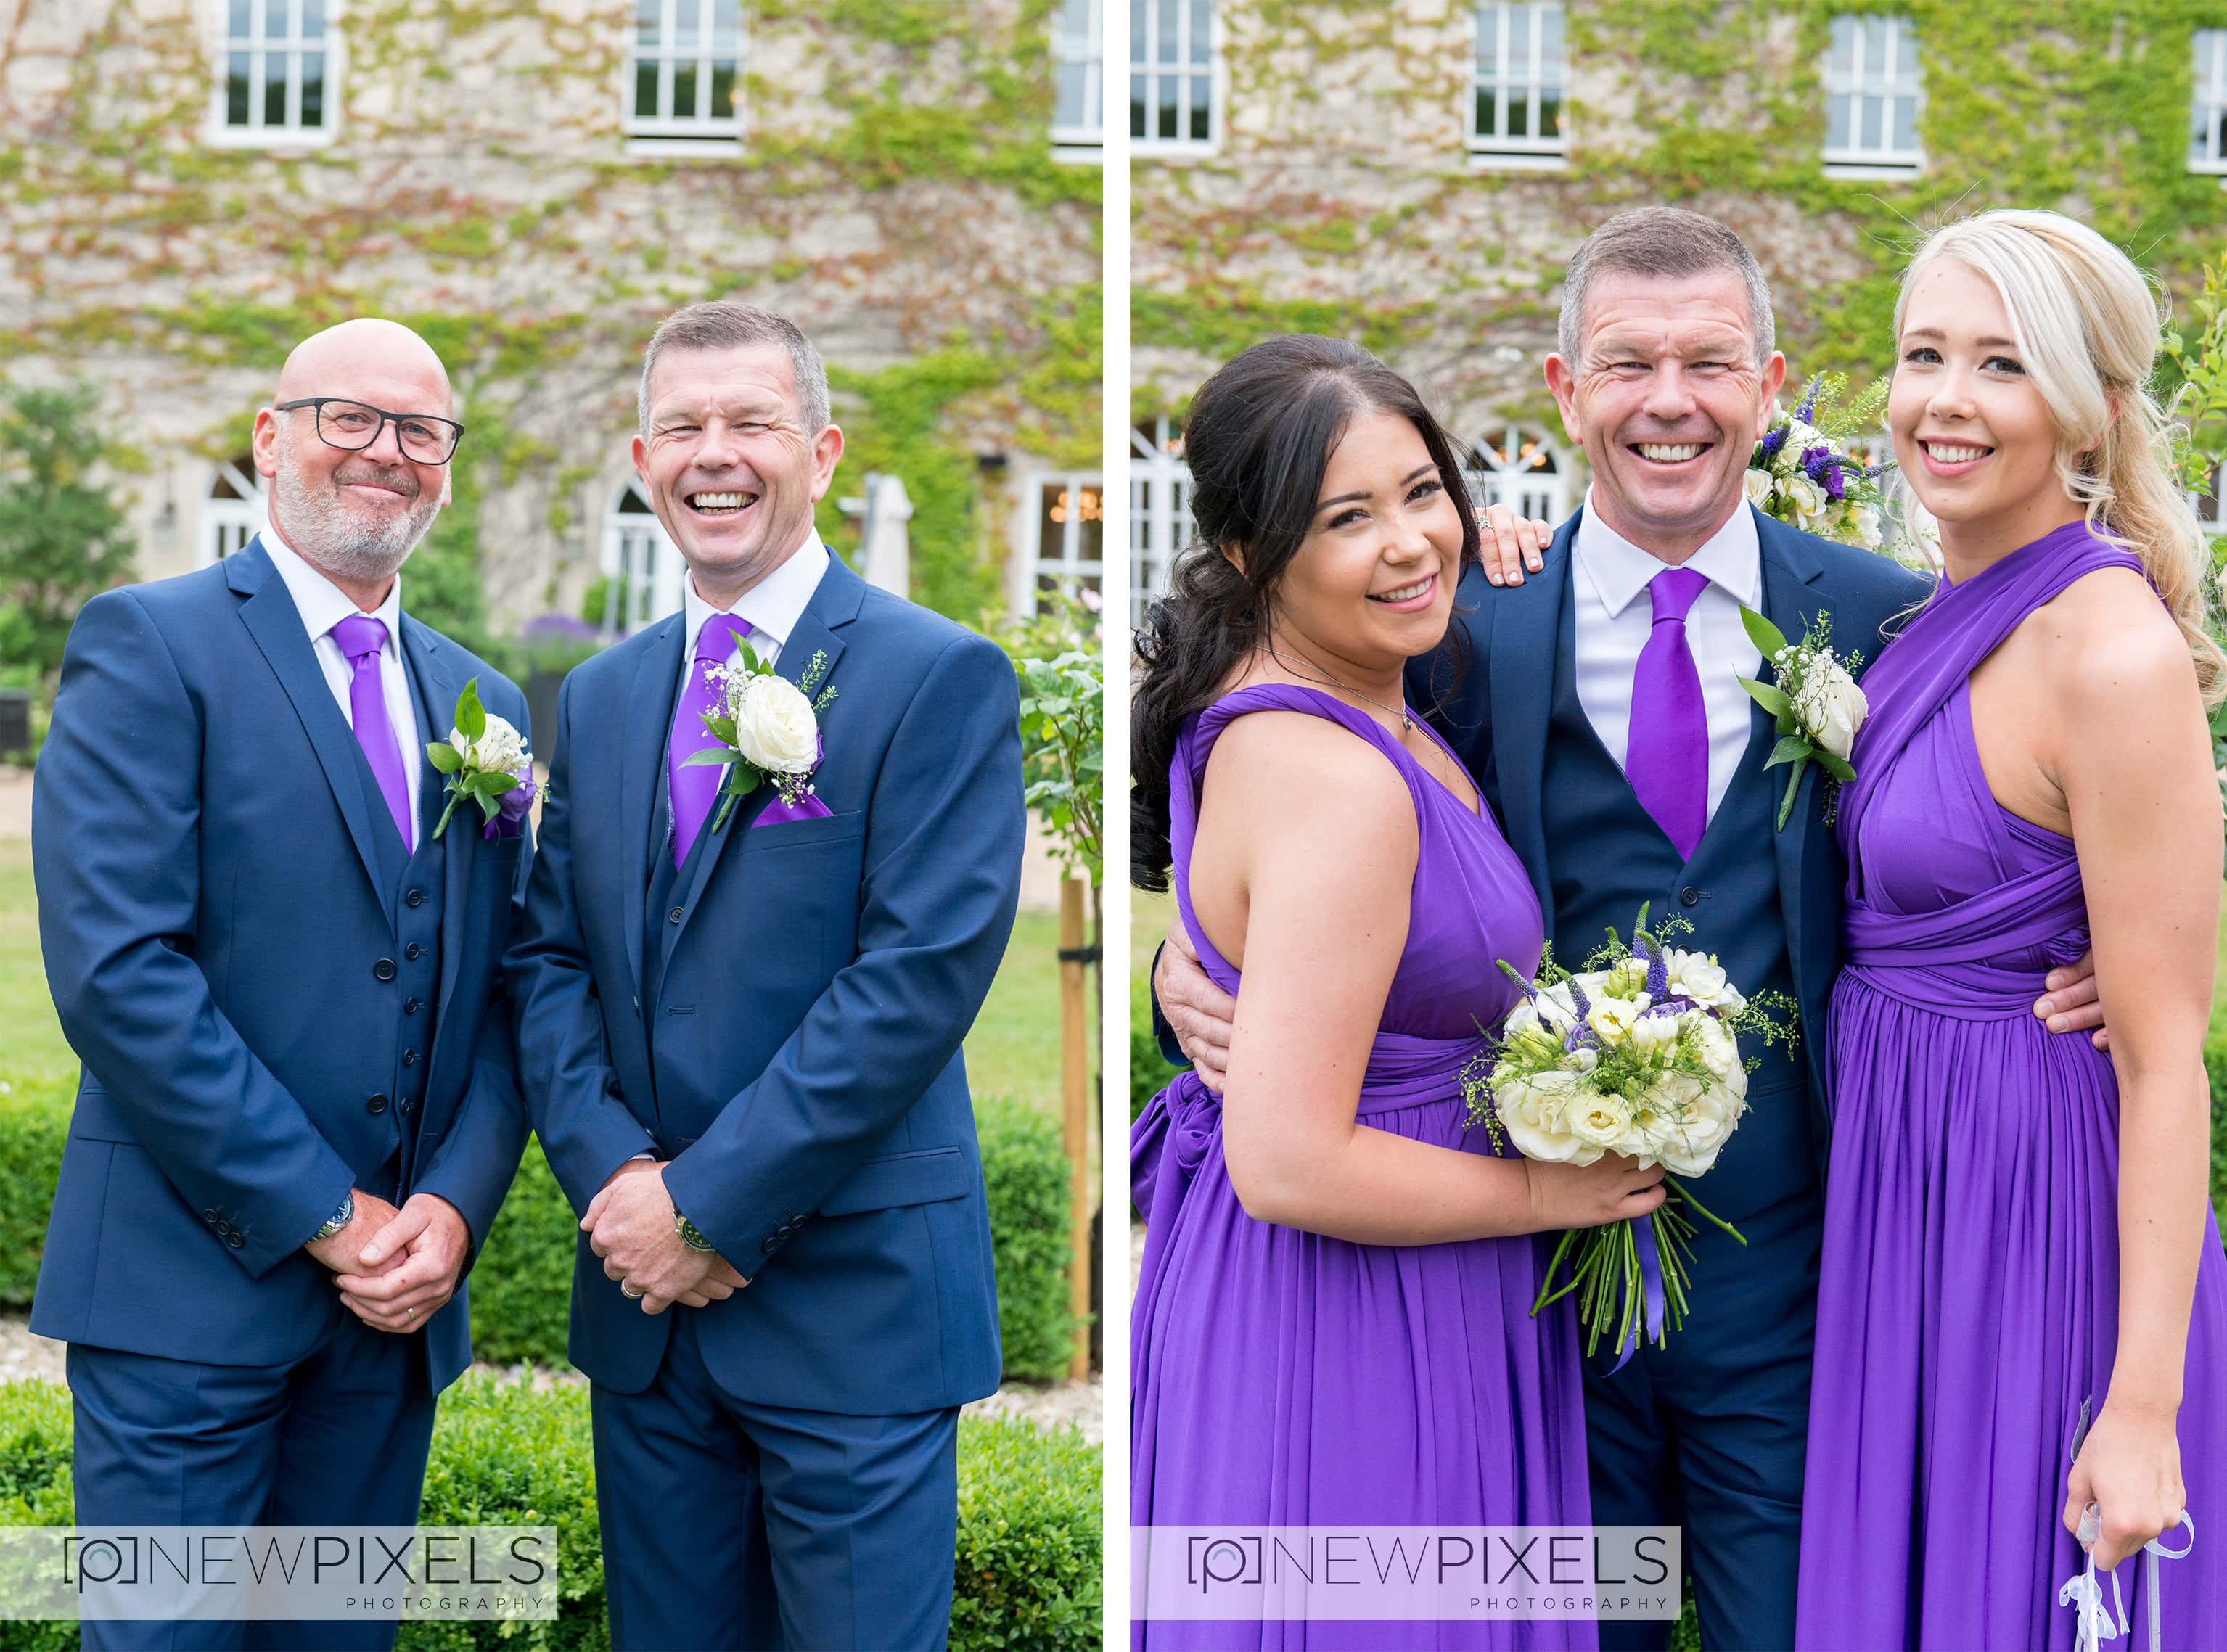 downhall wedding photographer14